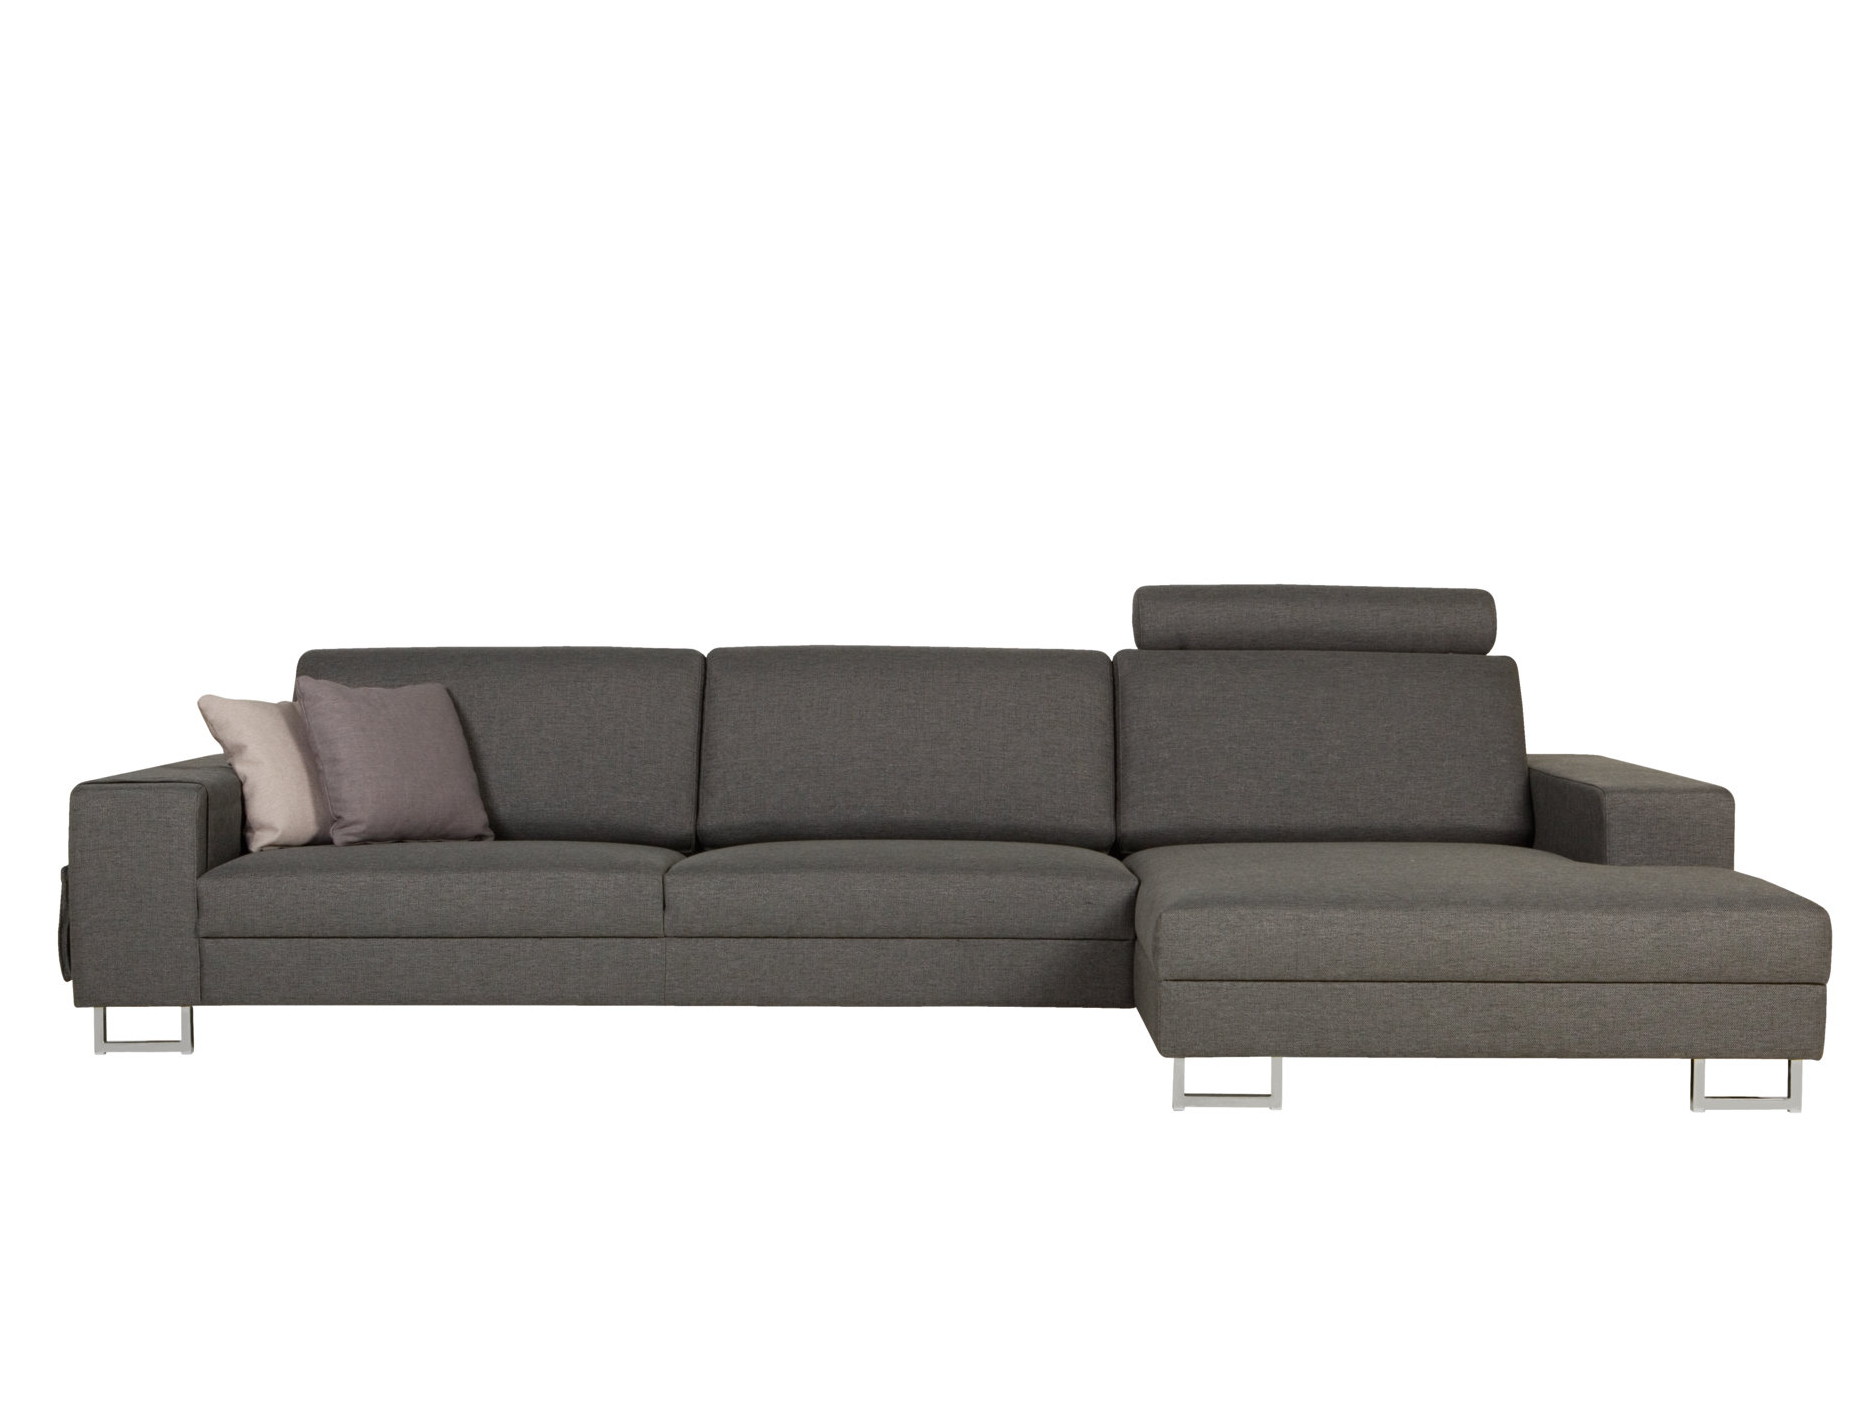 Quattro sofa with chaise longue quattro collection by sits for Chaise longue furniture